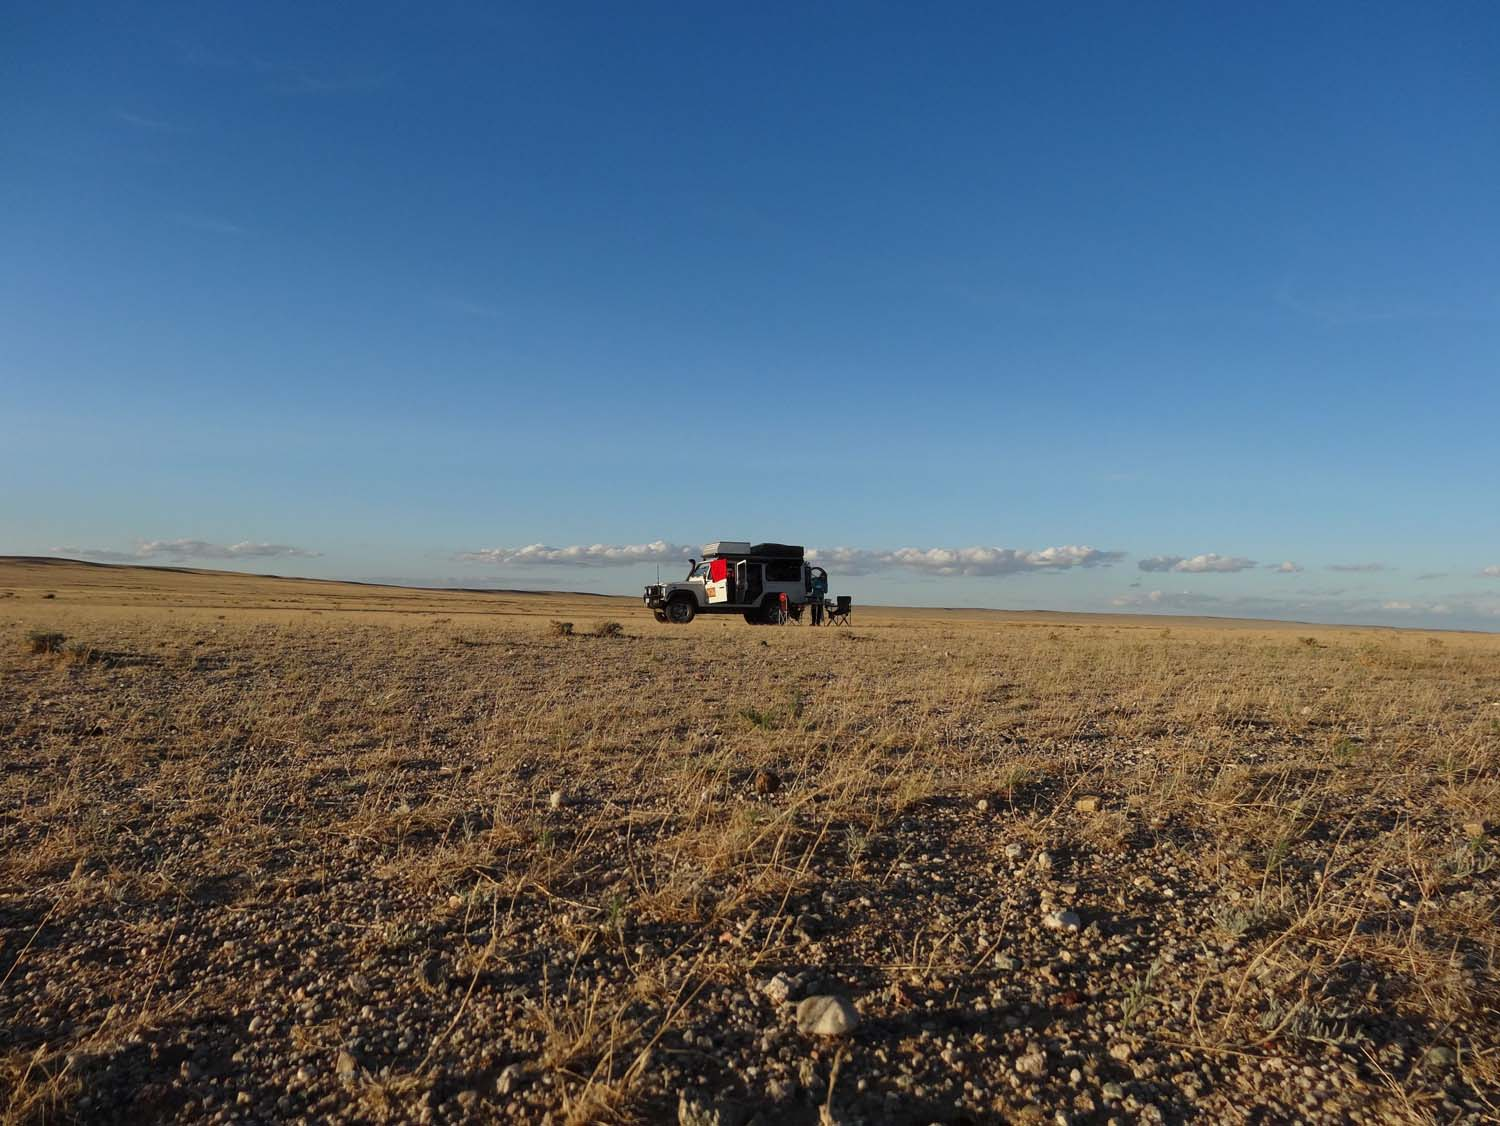 camping in the Gobi, so beautiful